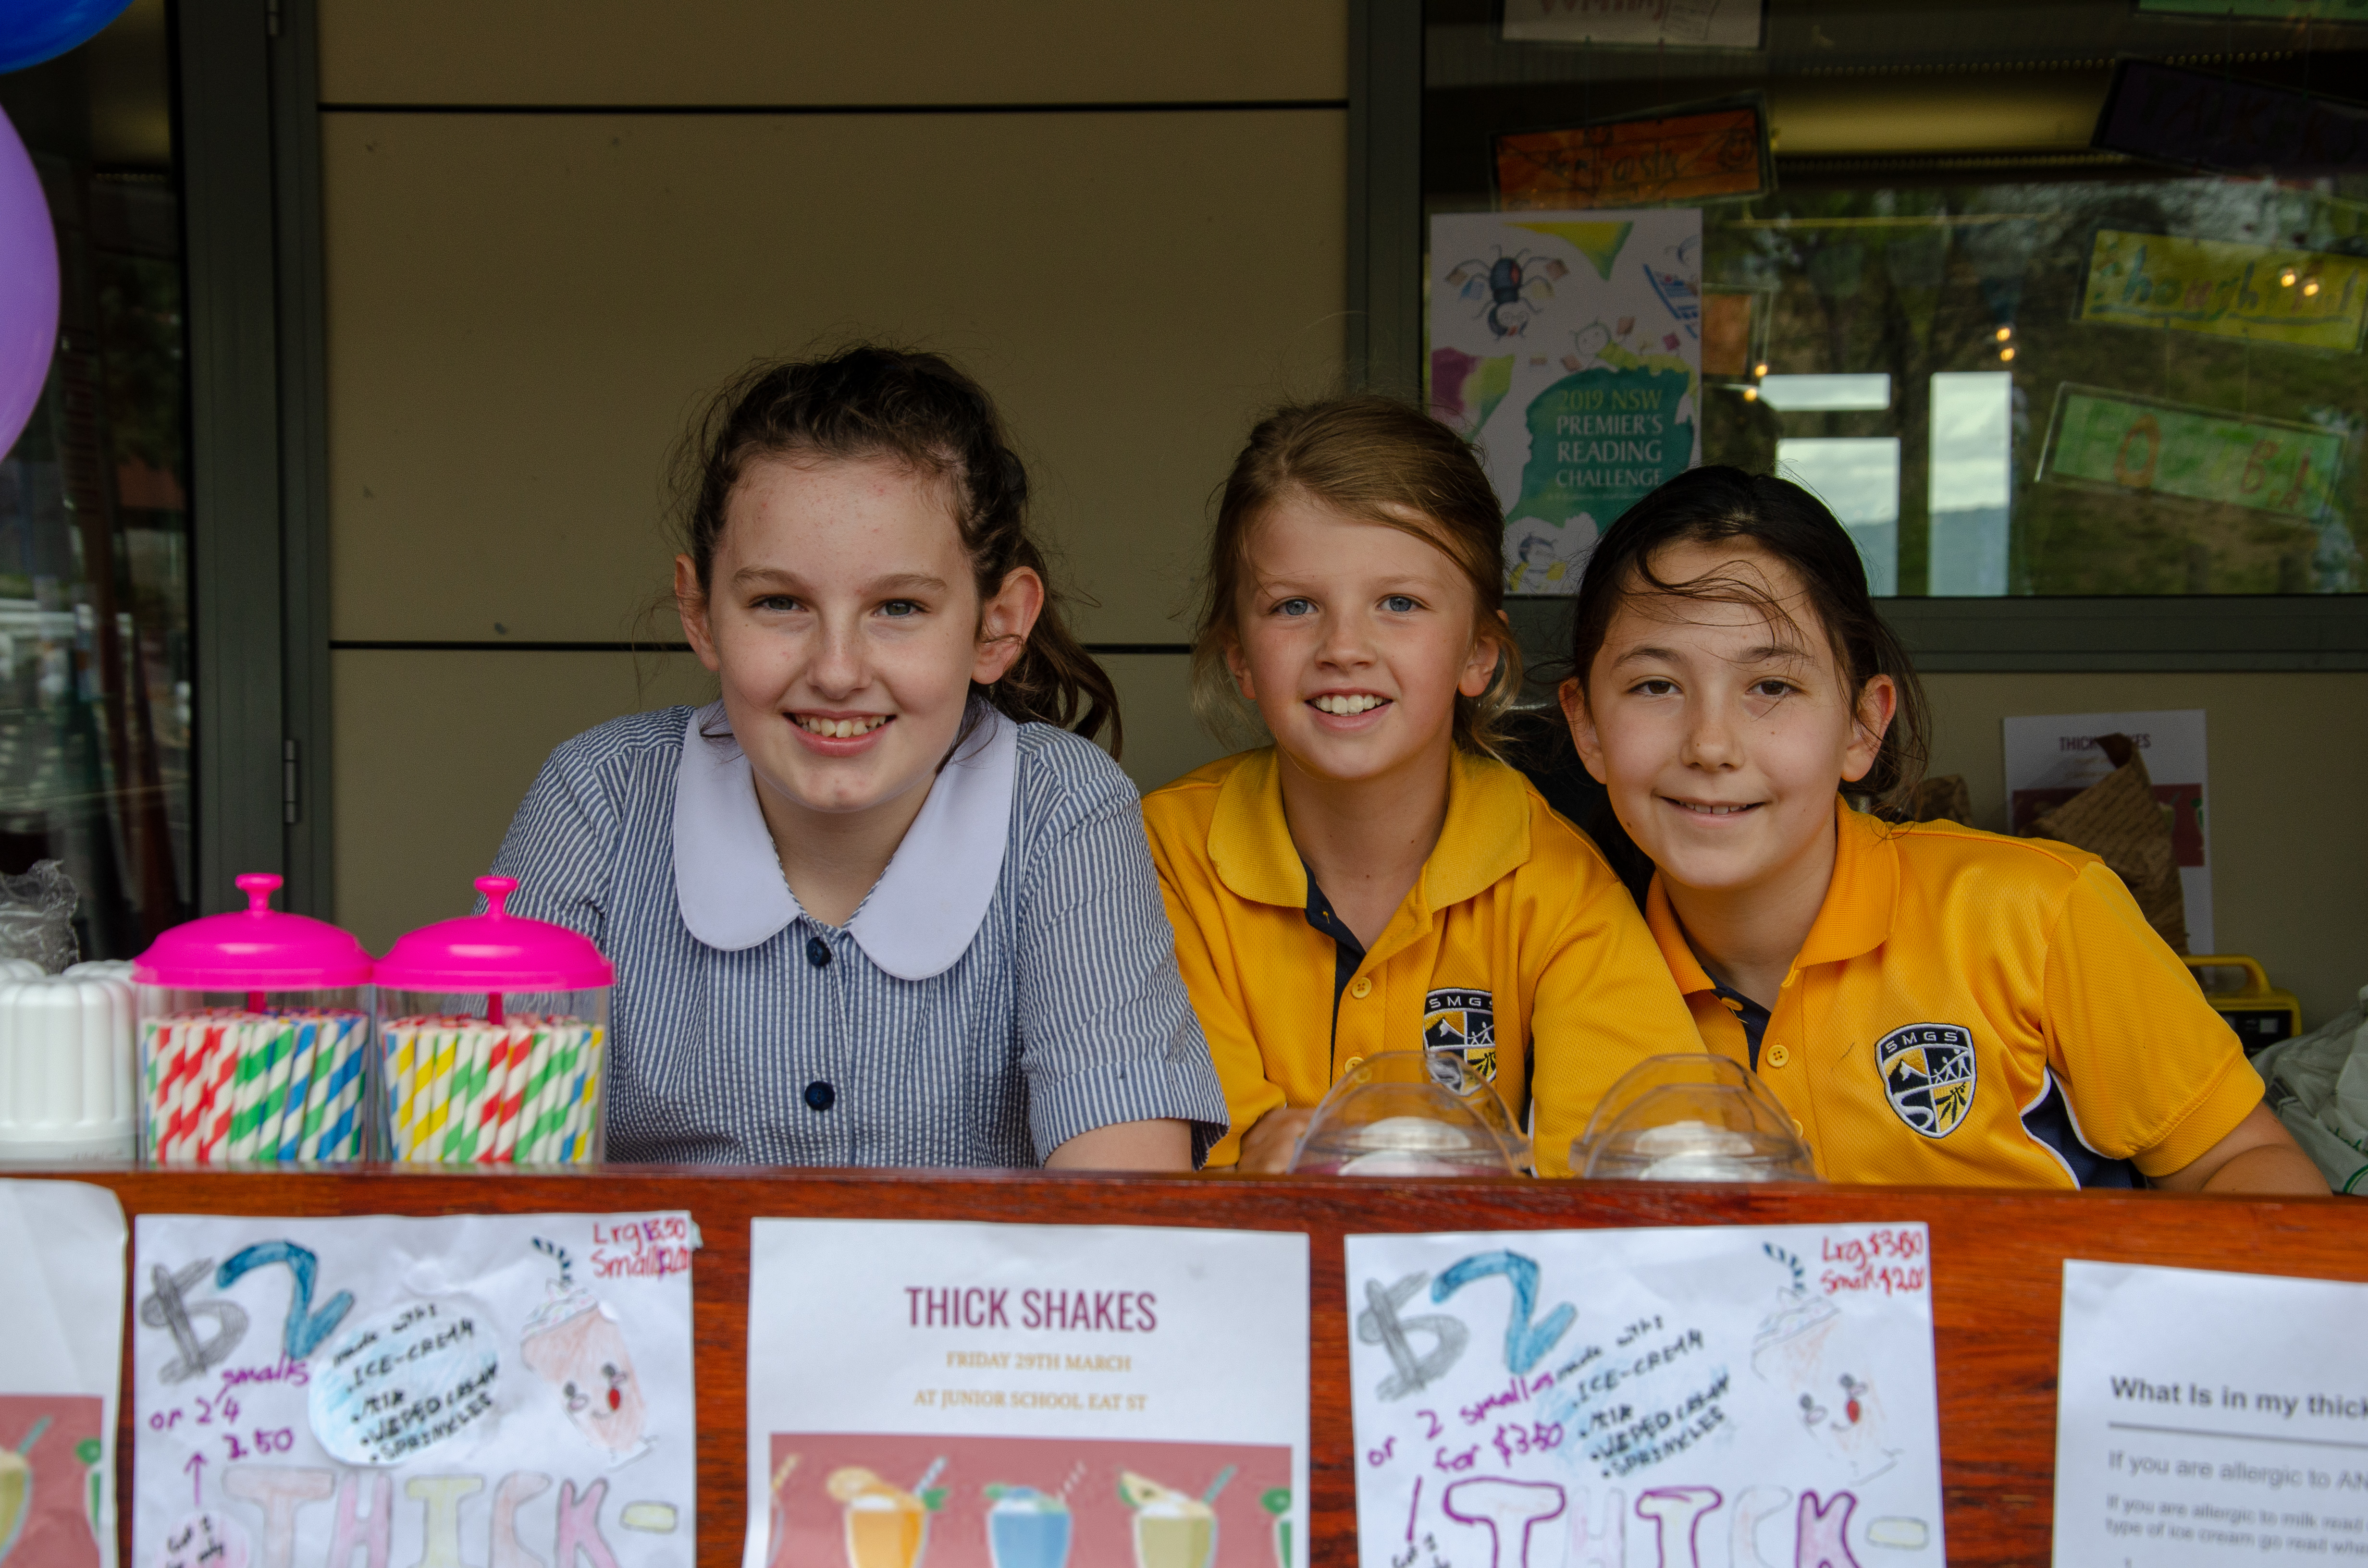 SMGS Junior School Student Wellbeing